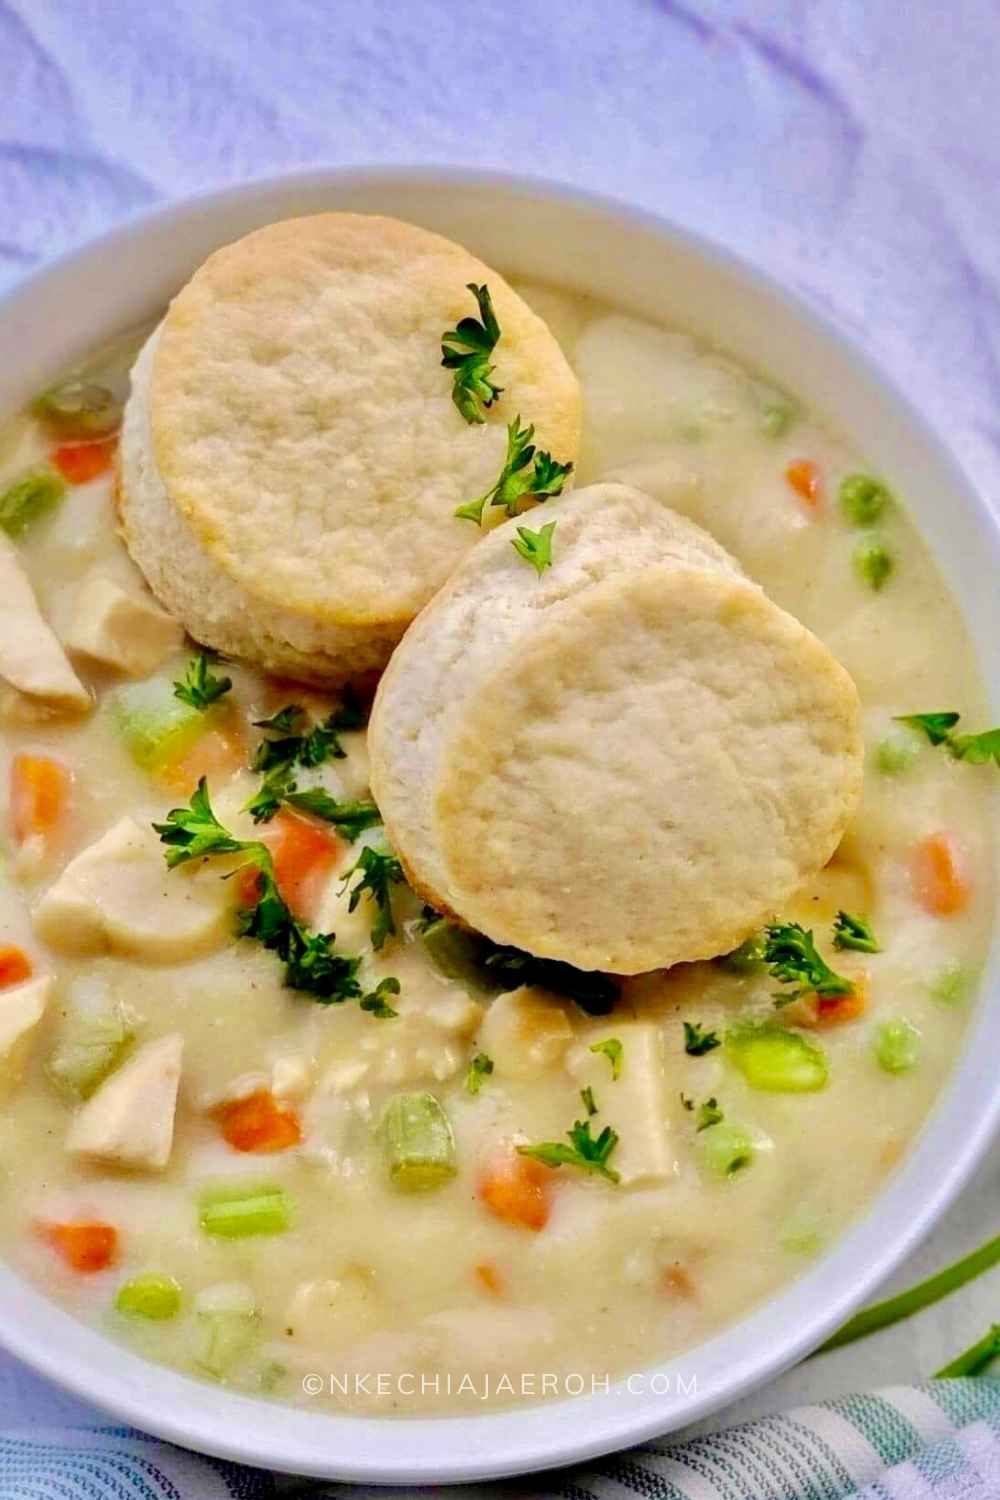 A perfect healthy chicken pot pie soup that is creamy, cozy, comforting, hearty, and very satisfying; this soup is gluten-free, dairy-free, nut-free, paleo-friendly, low-carb, and whole30-friendly. Serve this chicken pot pie soup with biscuits as we did, or crackers if you wish. This easy-to-make heart-healthy pot pie soup will keep you satisfied and wanting more at the same time! #Chickenrecipe #chickenpotpiesoup #Glutenfreerecipe #Dairyfreerecipe #Glutenfreechickenpotpiesoup #cauliflowerrecipe